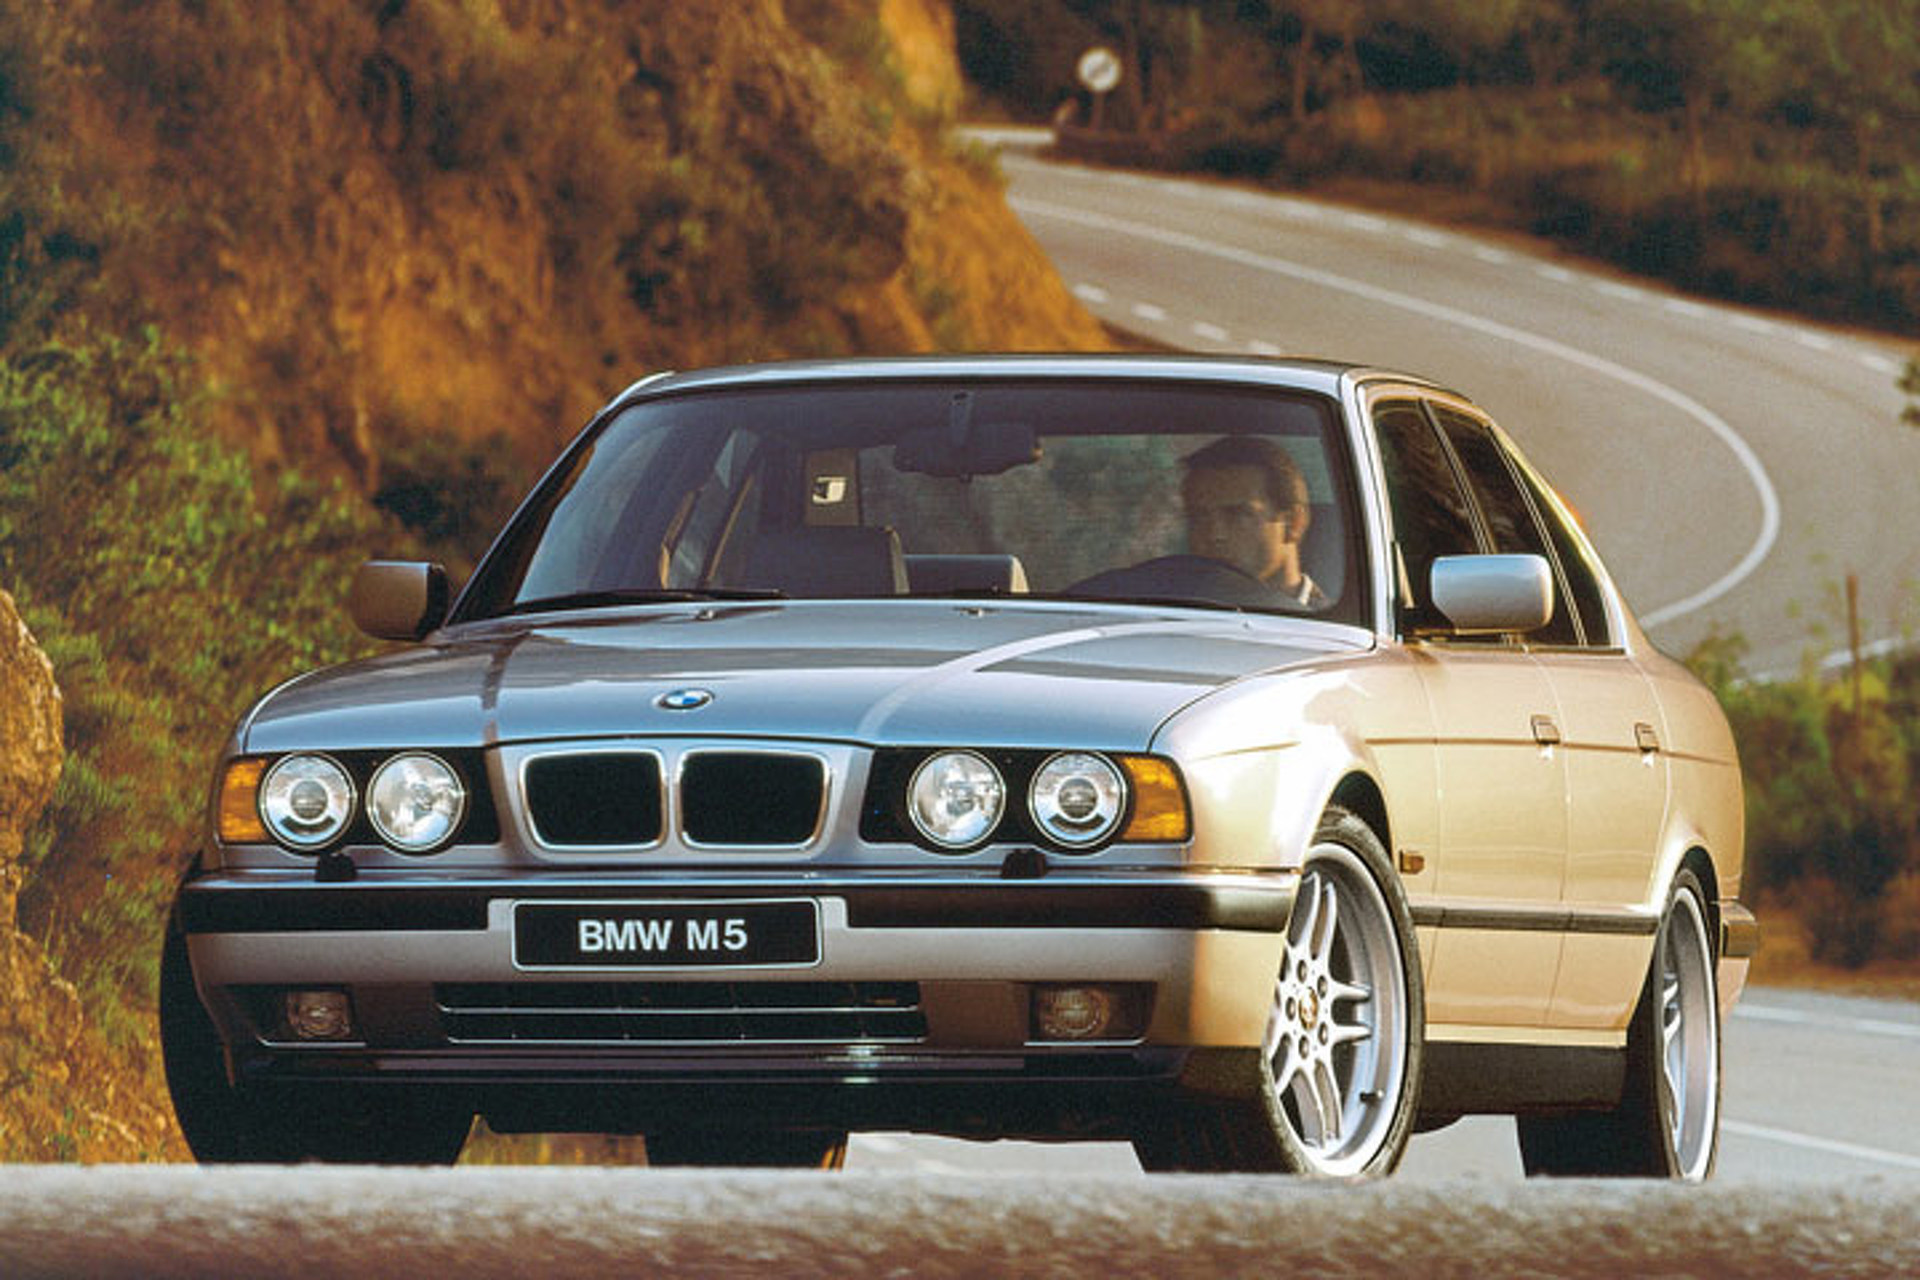 10-cars-that-defined-the-90s.jpg